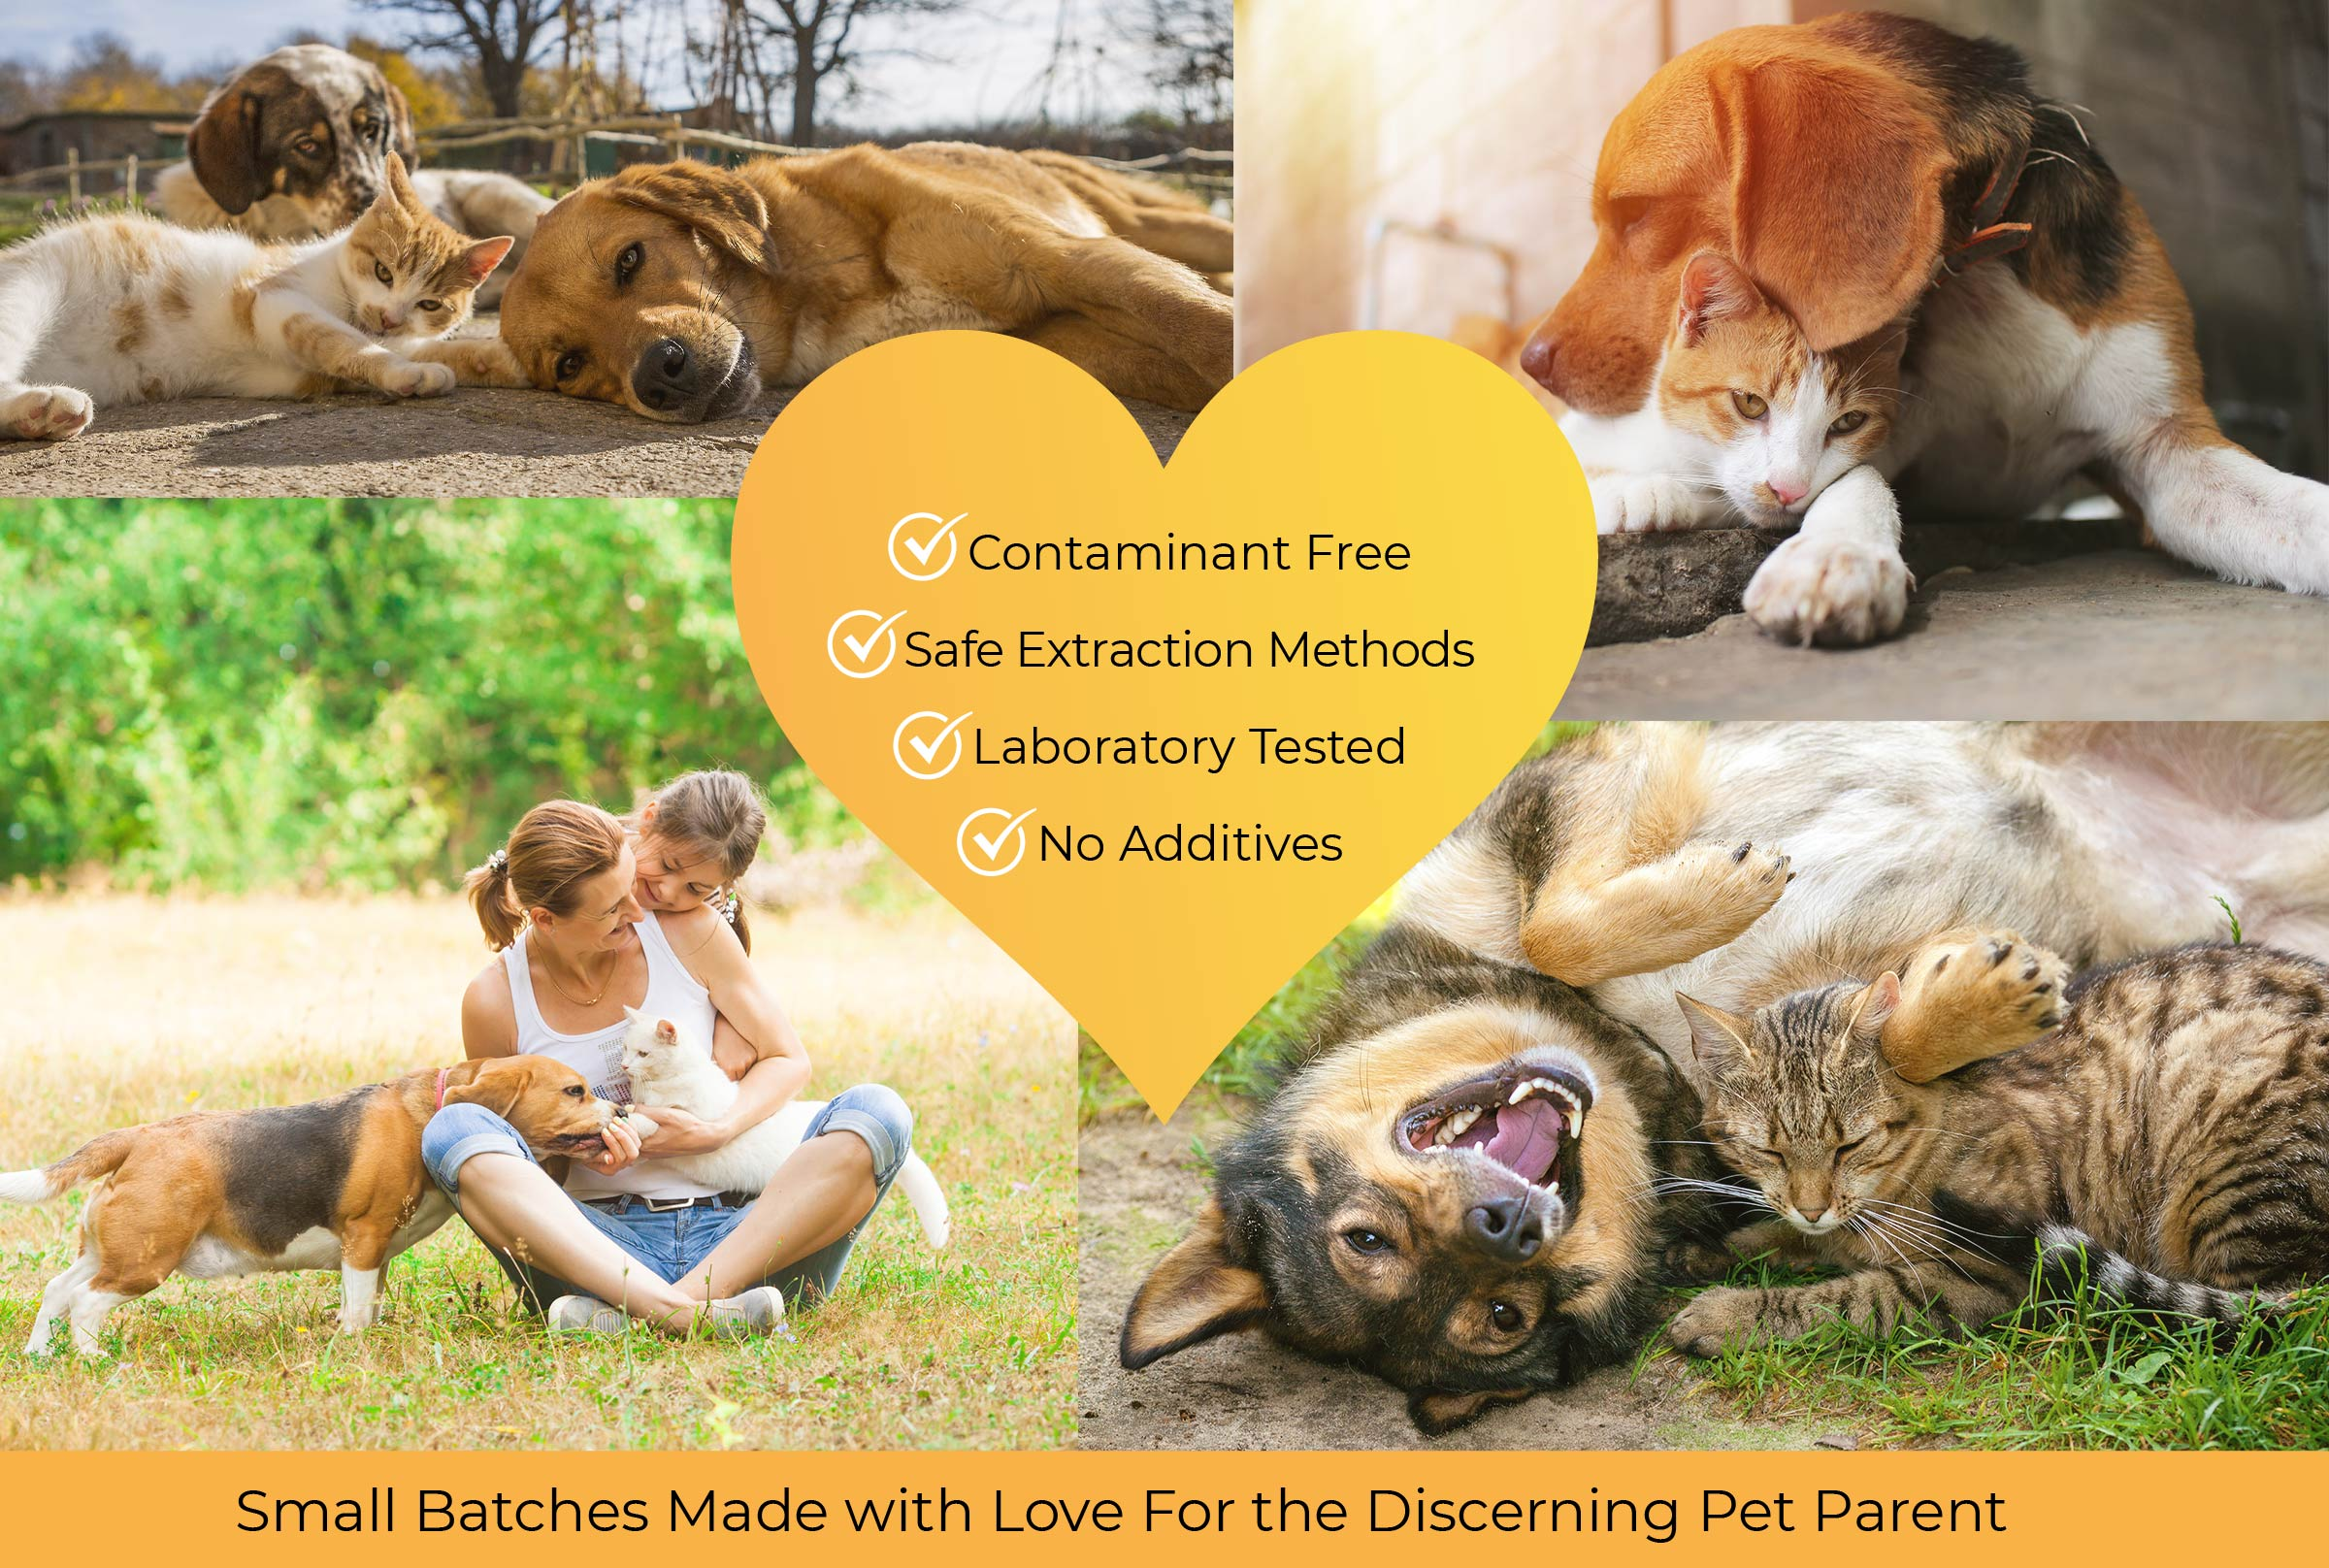 All Natural CBD Oil for Cats and Dogs - Lab Tested - Contaminant Free